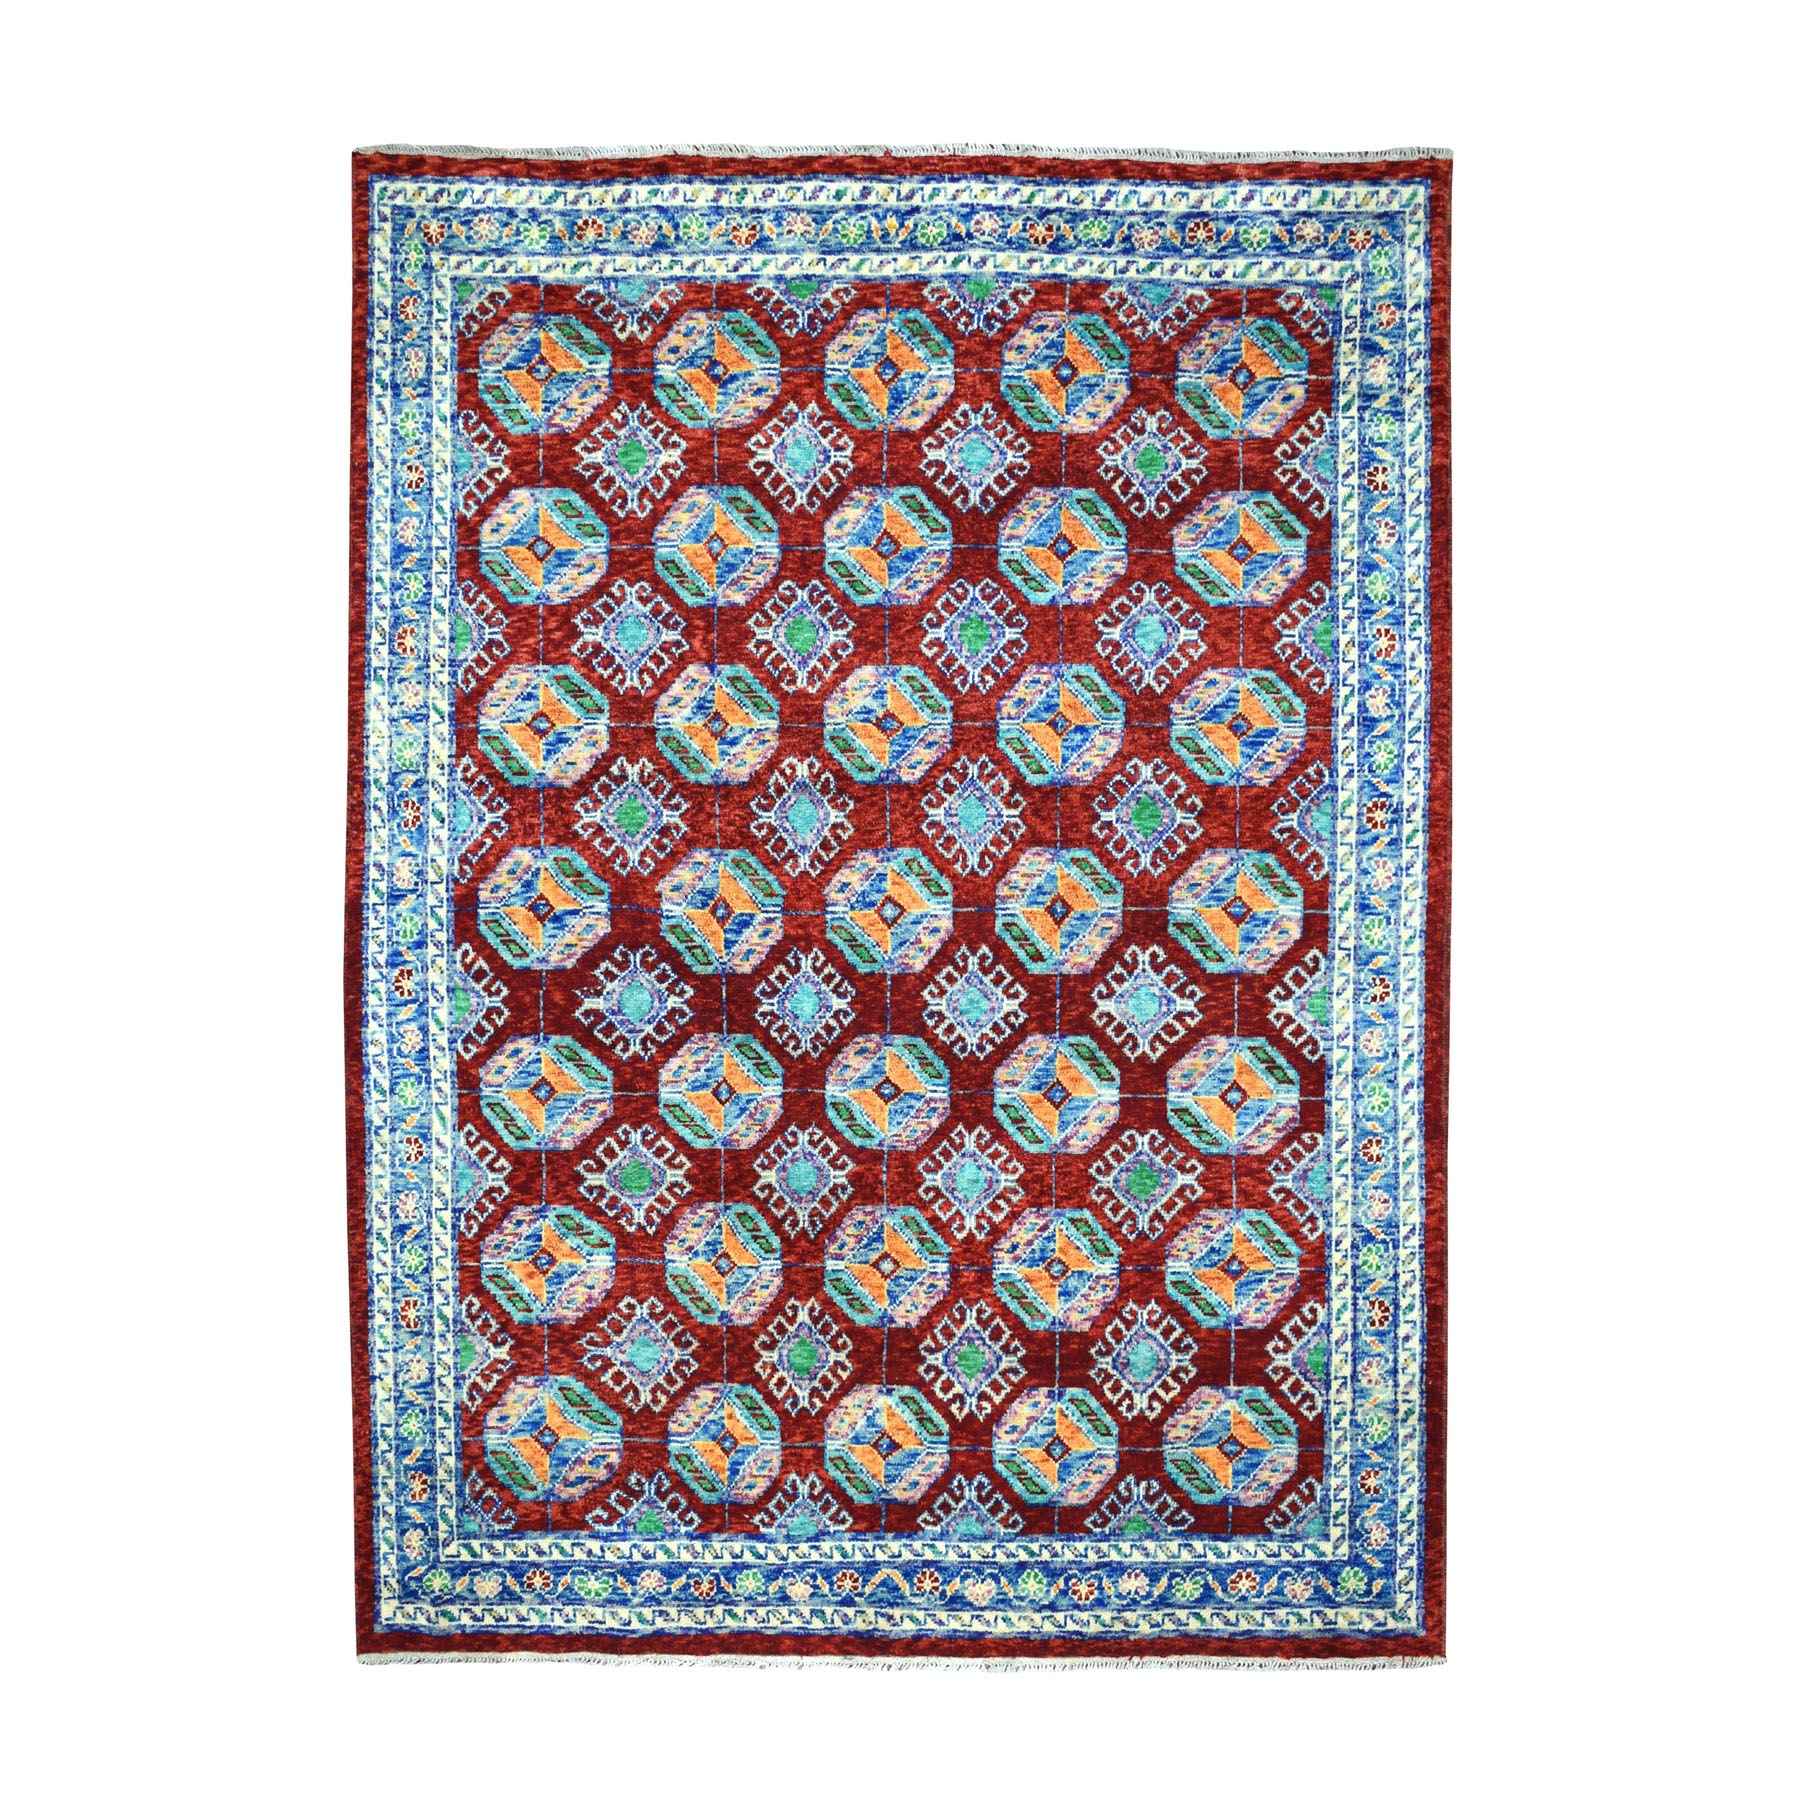 "6'9""x8'7"" Red Elephant Feet Design Colorful Afghan Baluch Hand Knotted Pure Wool Oriental Rug"